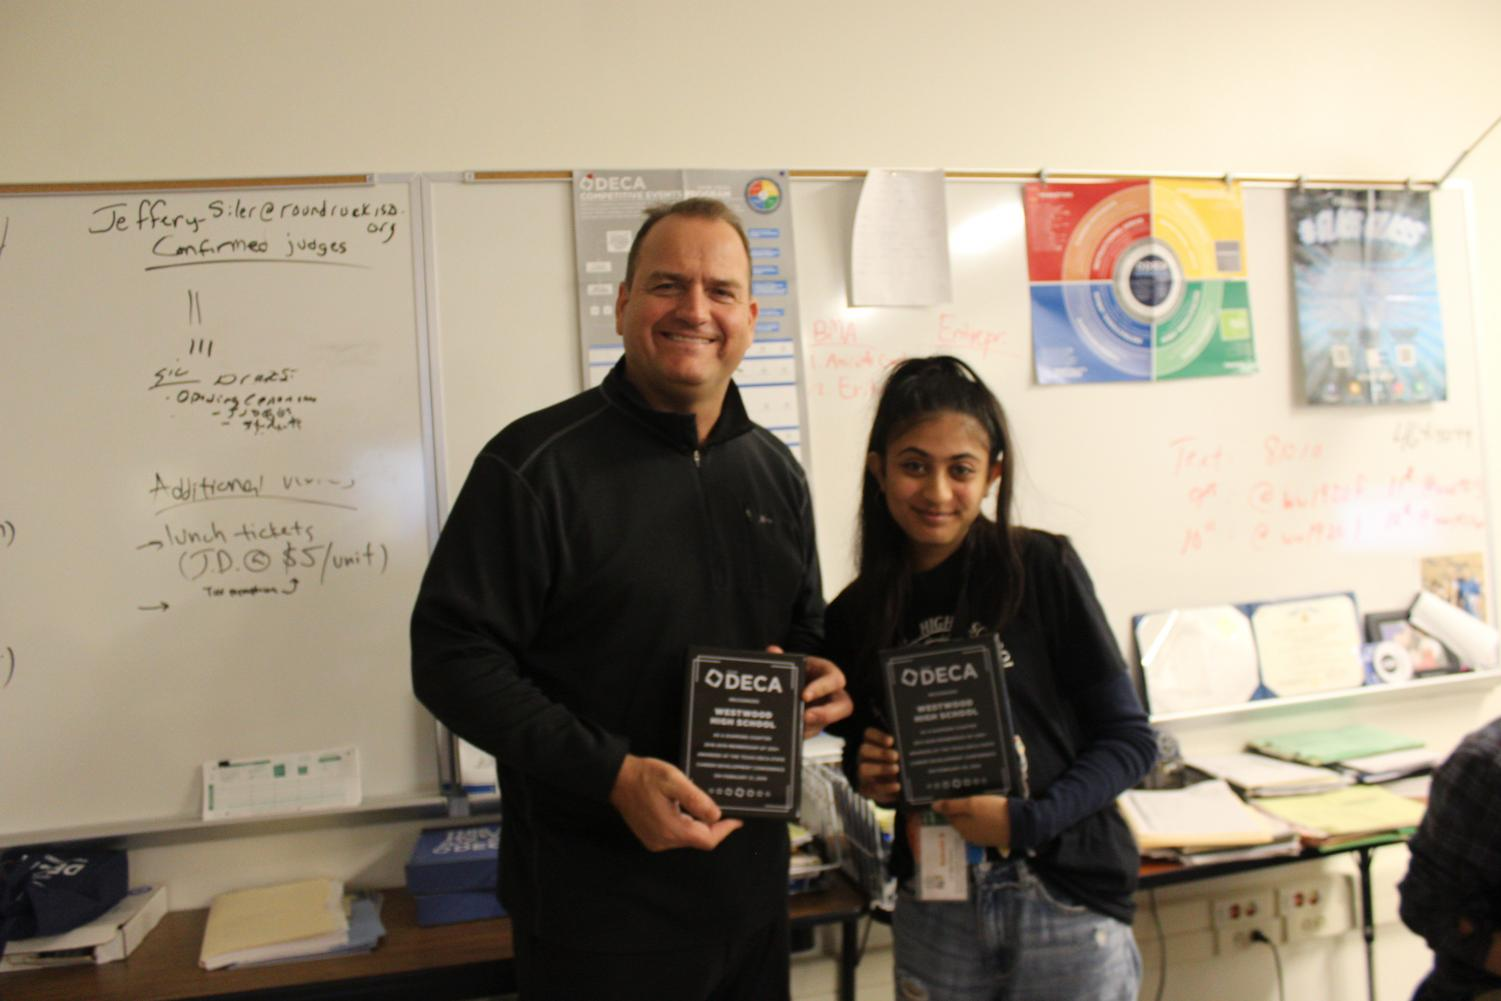 Mr.+Jeff+Siler+and+Sakshi+Dhavalikar+%2721+pose+with+the+DECA+plaques+that+were+used+to+show+the+8th+graders+how+big+our+DECA+chapter+has+grown+and+how+well+it%27s+done.++Ambassadors+encouraged+them+to+join+career-related+clubs+to+help+them+gain+more+knowledge+and+soft+skills.